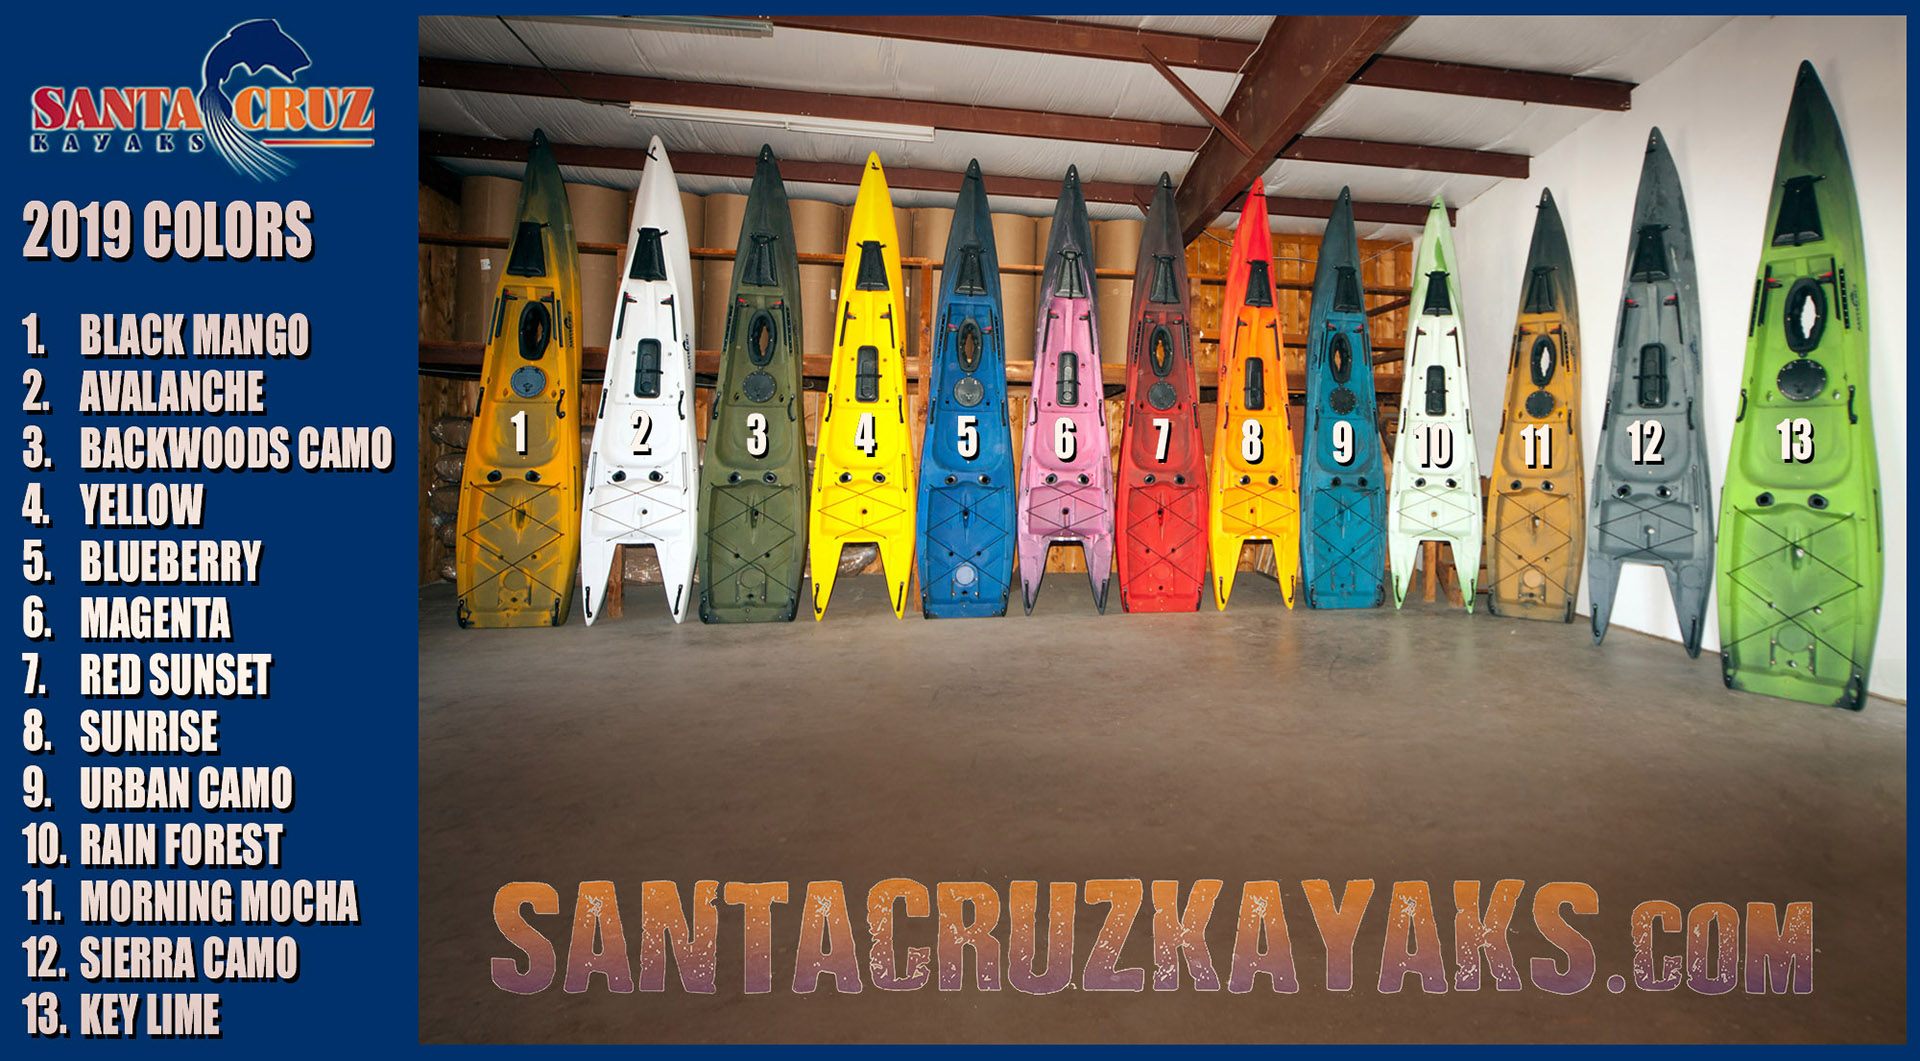 Santa Cruz Kayaks 2019 Color Options